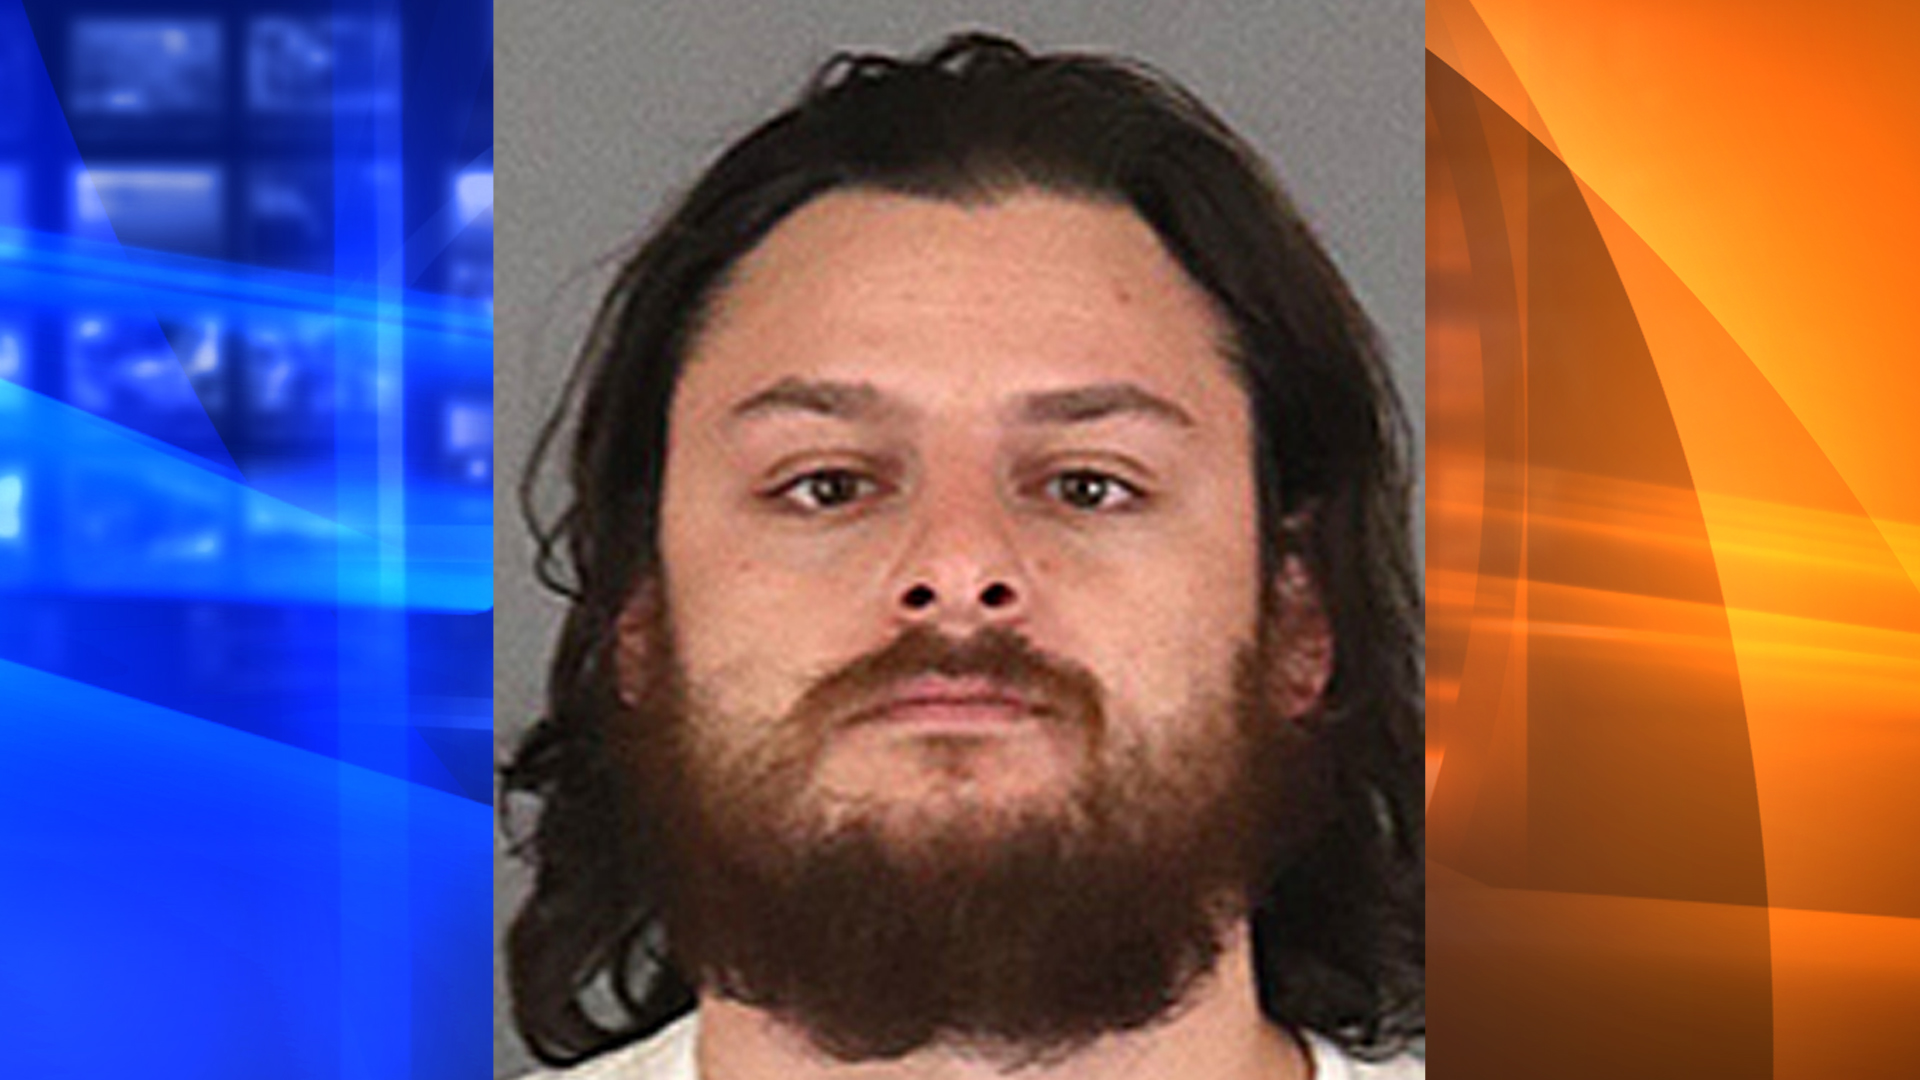 Alfonso Villegas, 25, appears in a photo released by the Riverside County Sheriff's Department on Dec. 20, 2019.